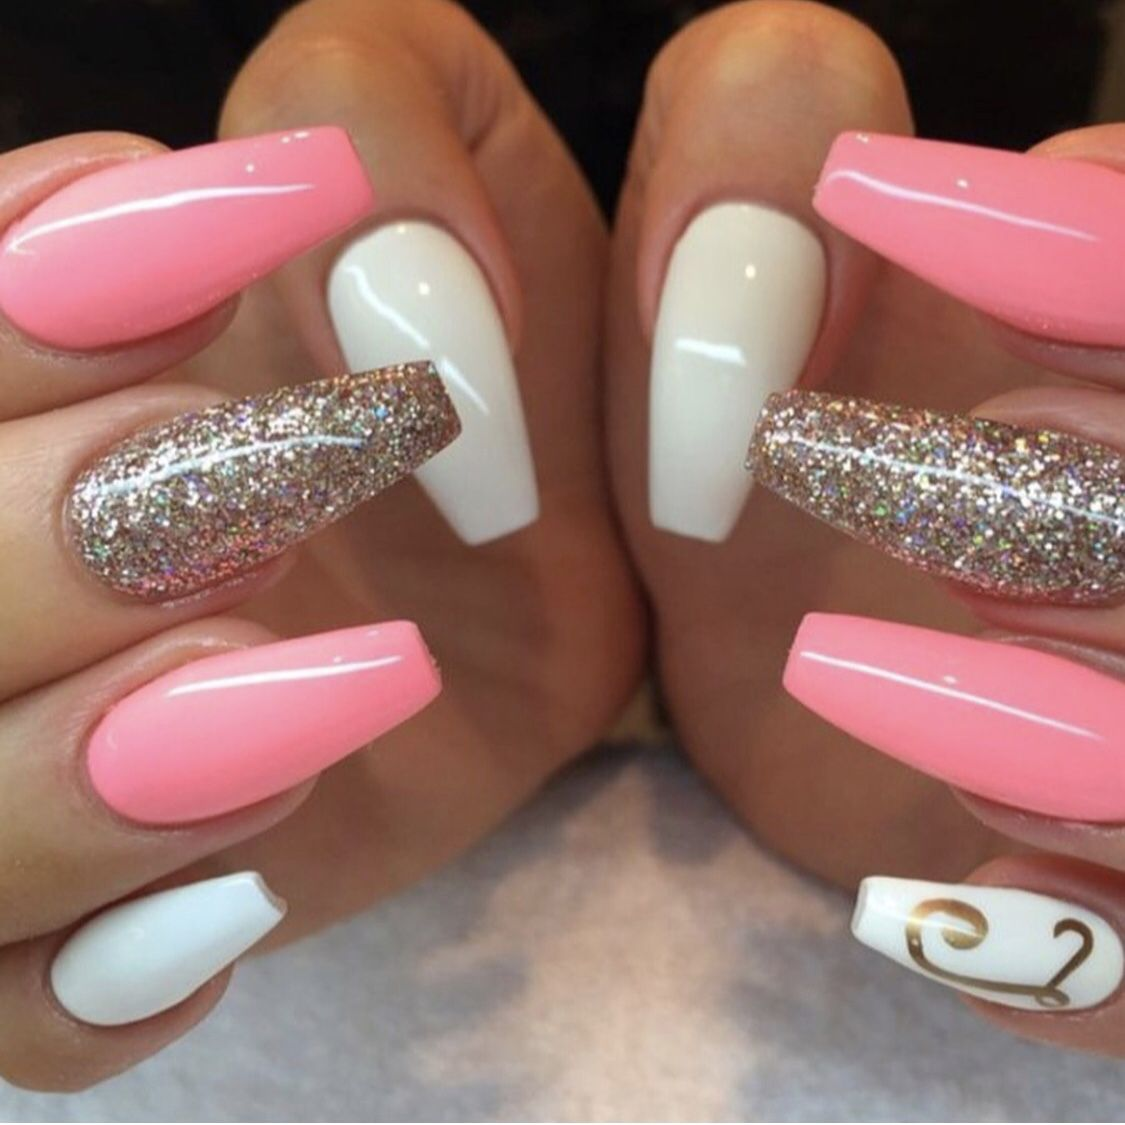 Pink And White Nails With Glitter With A Letter On Pinky Nail White Acrylic Nails Peach Nails Gold Nails